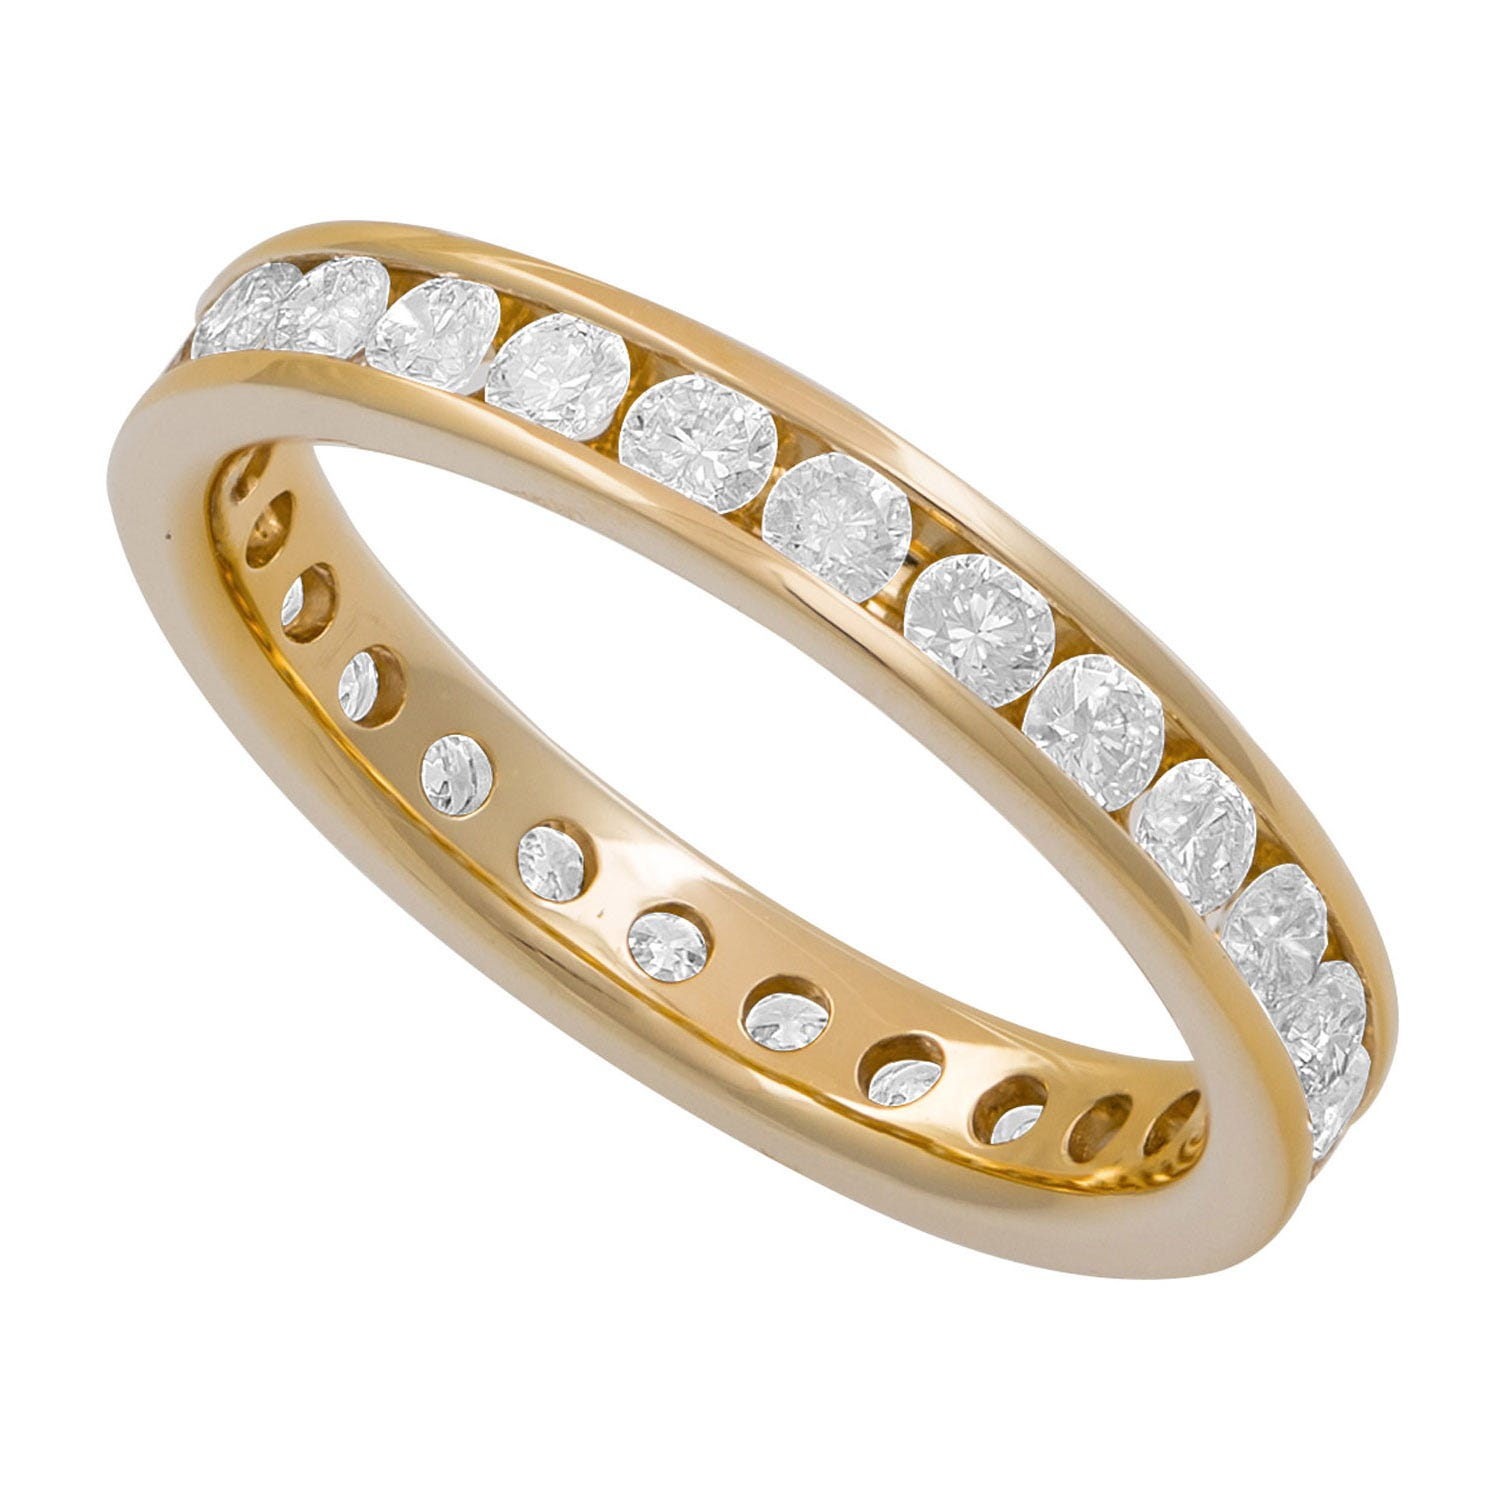 18ct gold ladies 1.00 carat diamond full eternity channel-set ring